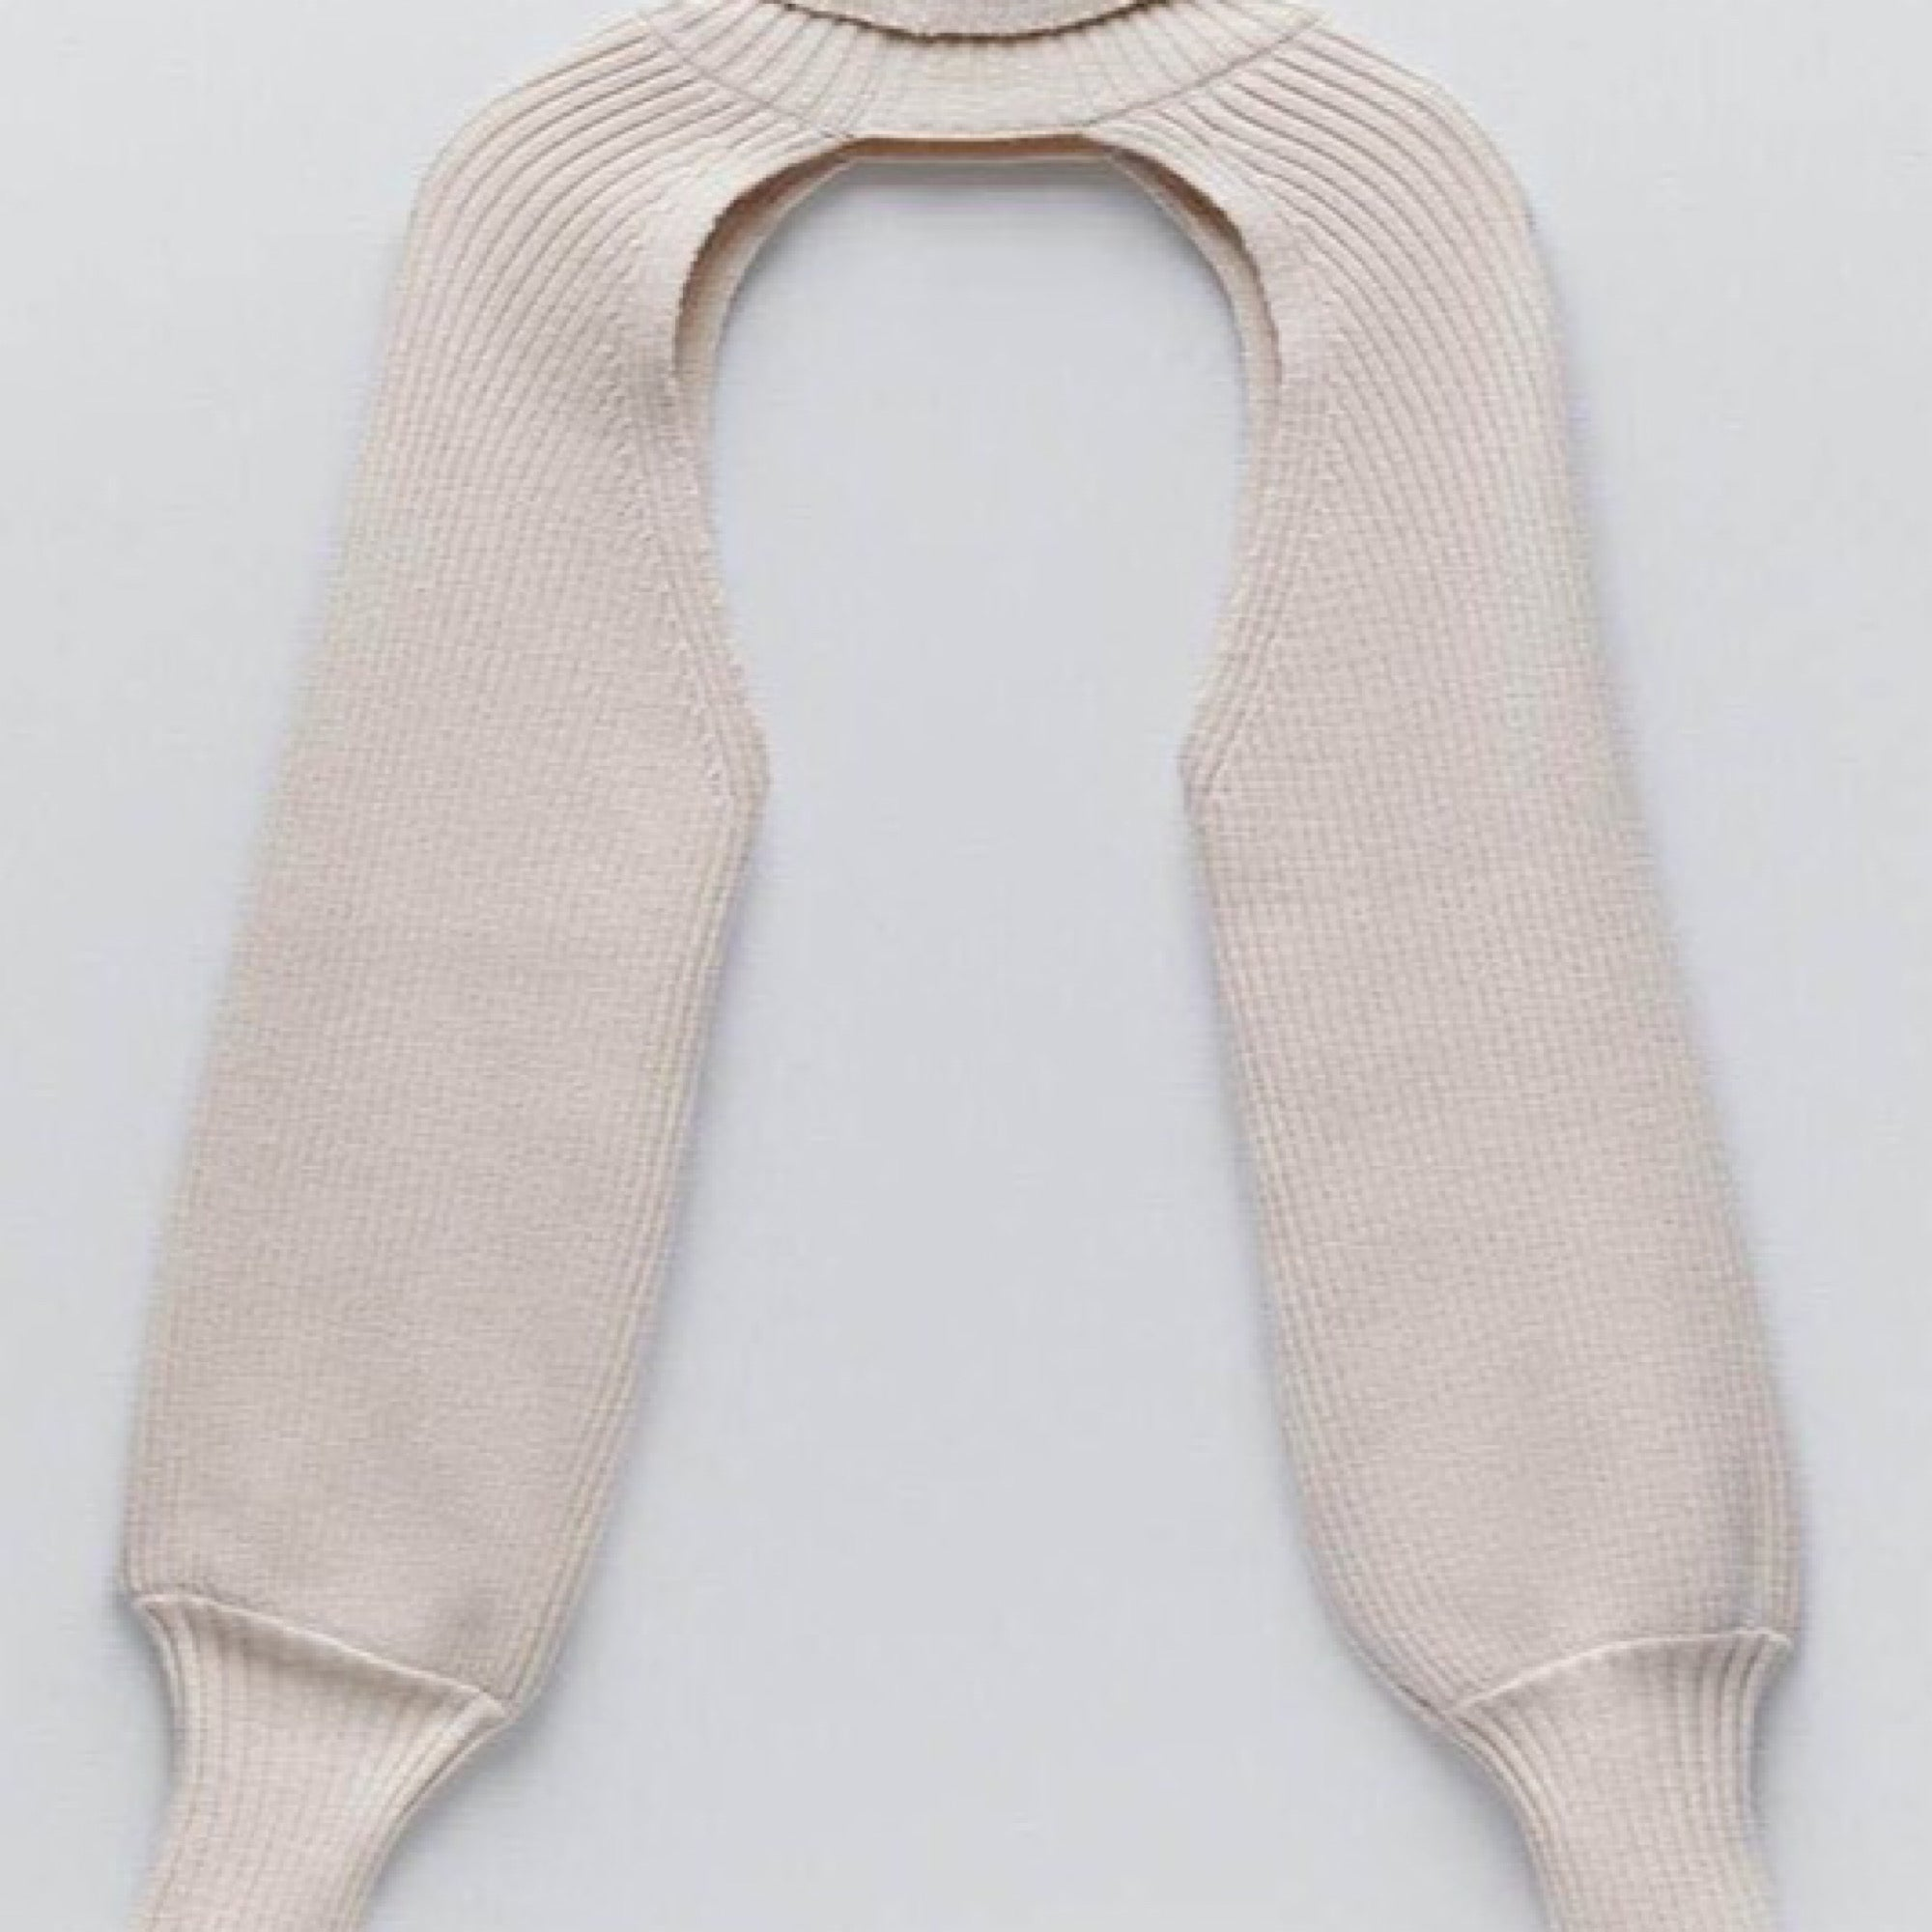 Turtleneck Sweater Scarf With Sleeves